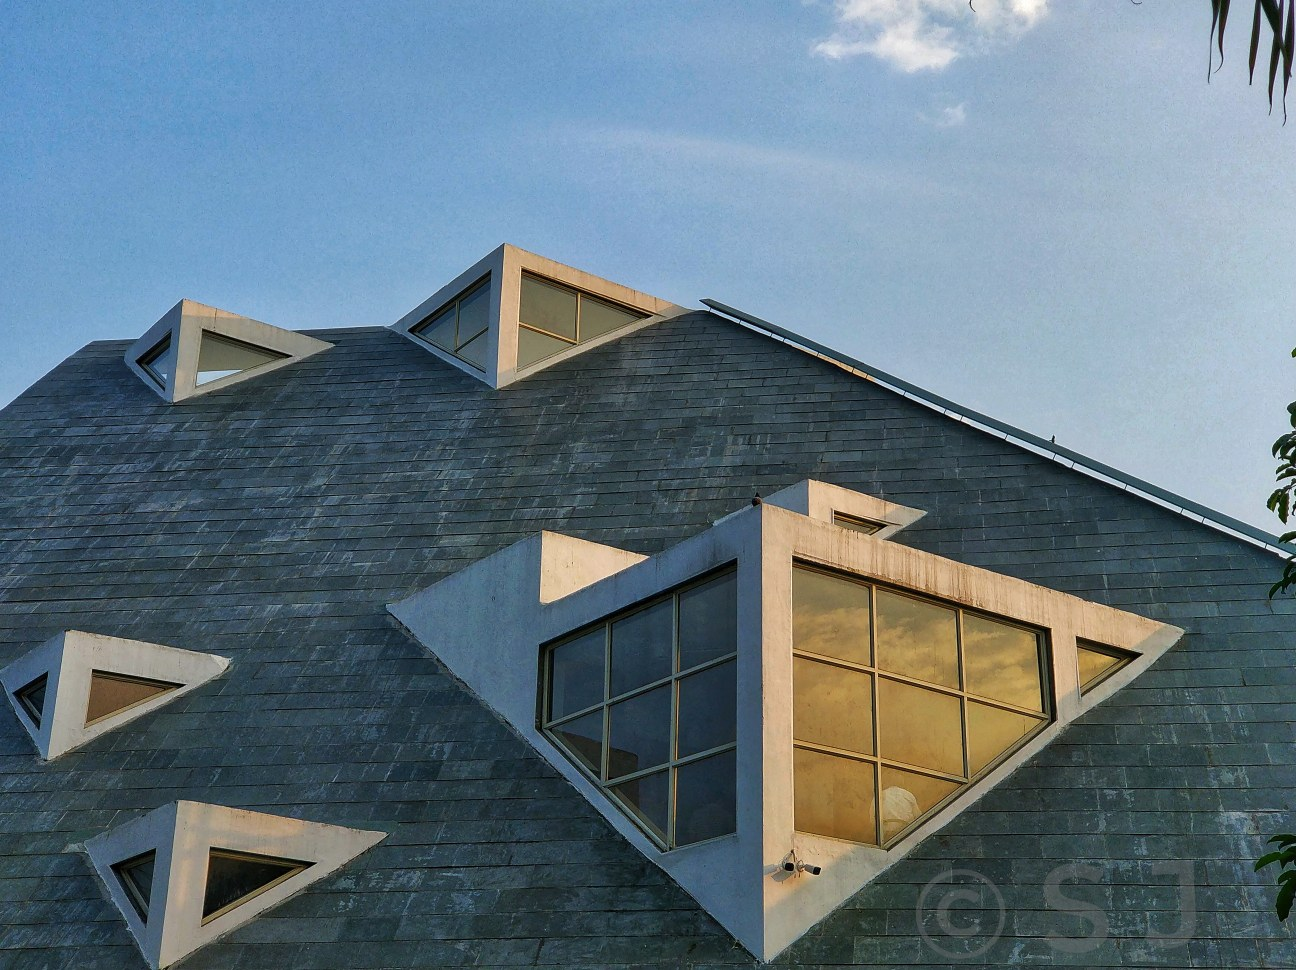 An Auditorium, which looks cool as an architectural place - Captured Using A Smartphone